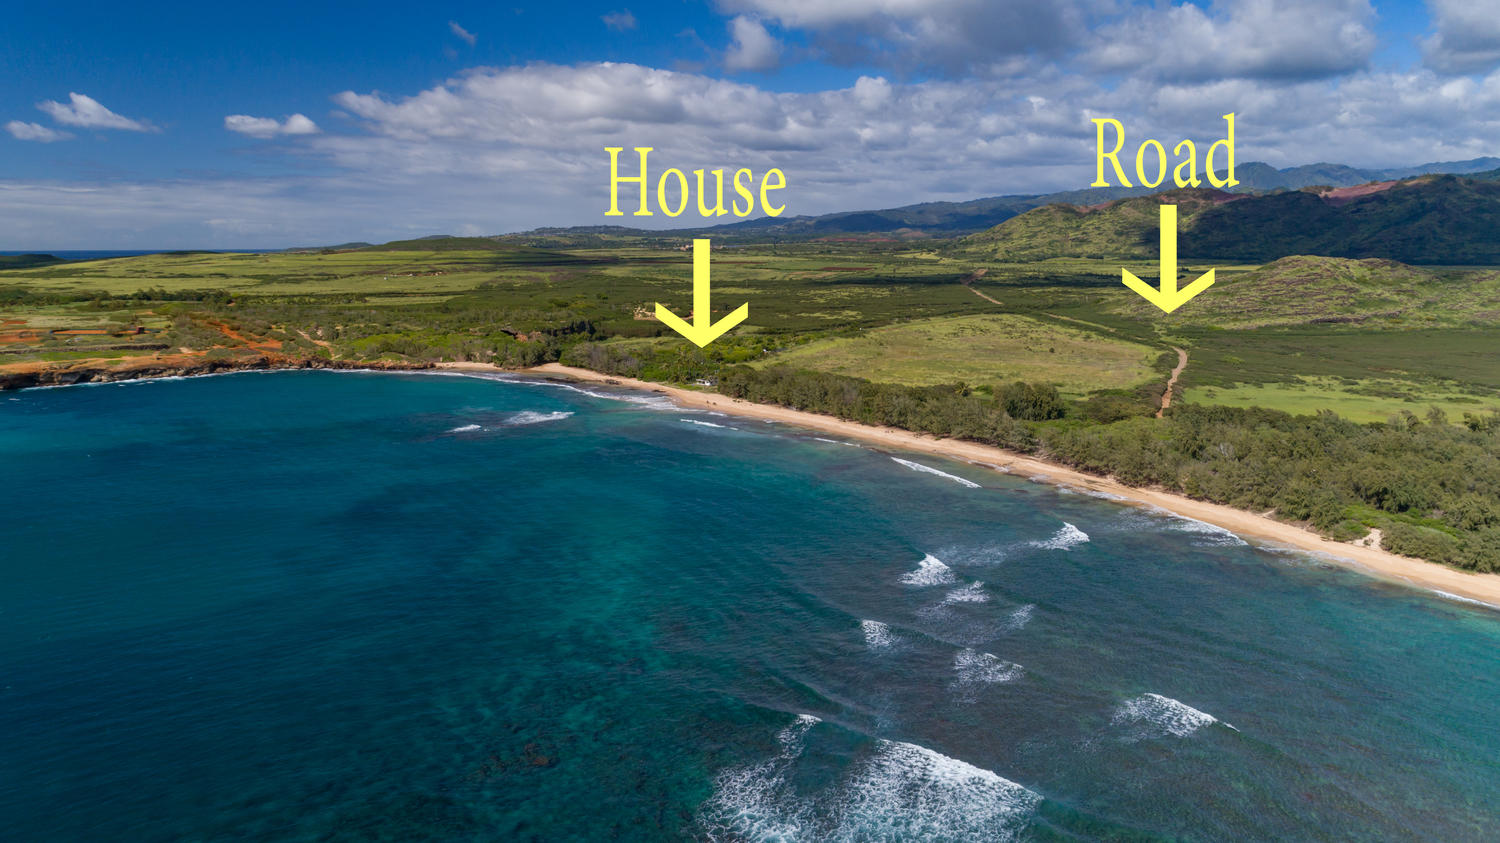 - FUN FACT: The Gillin Beach House is the ONLY home in the entire Maha'ulepu Valley.